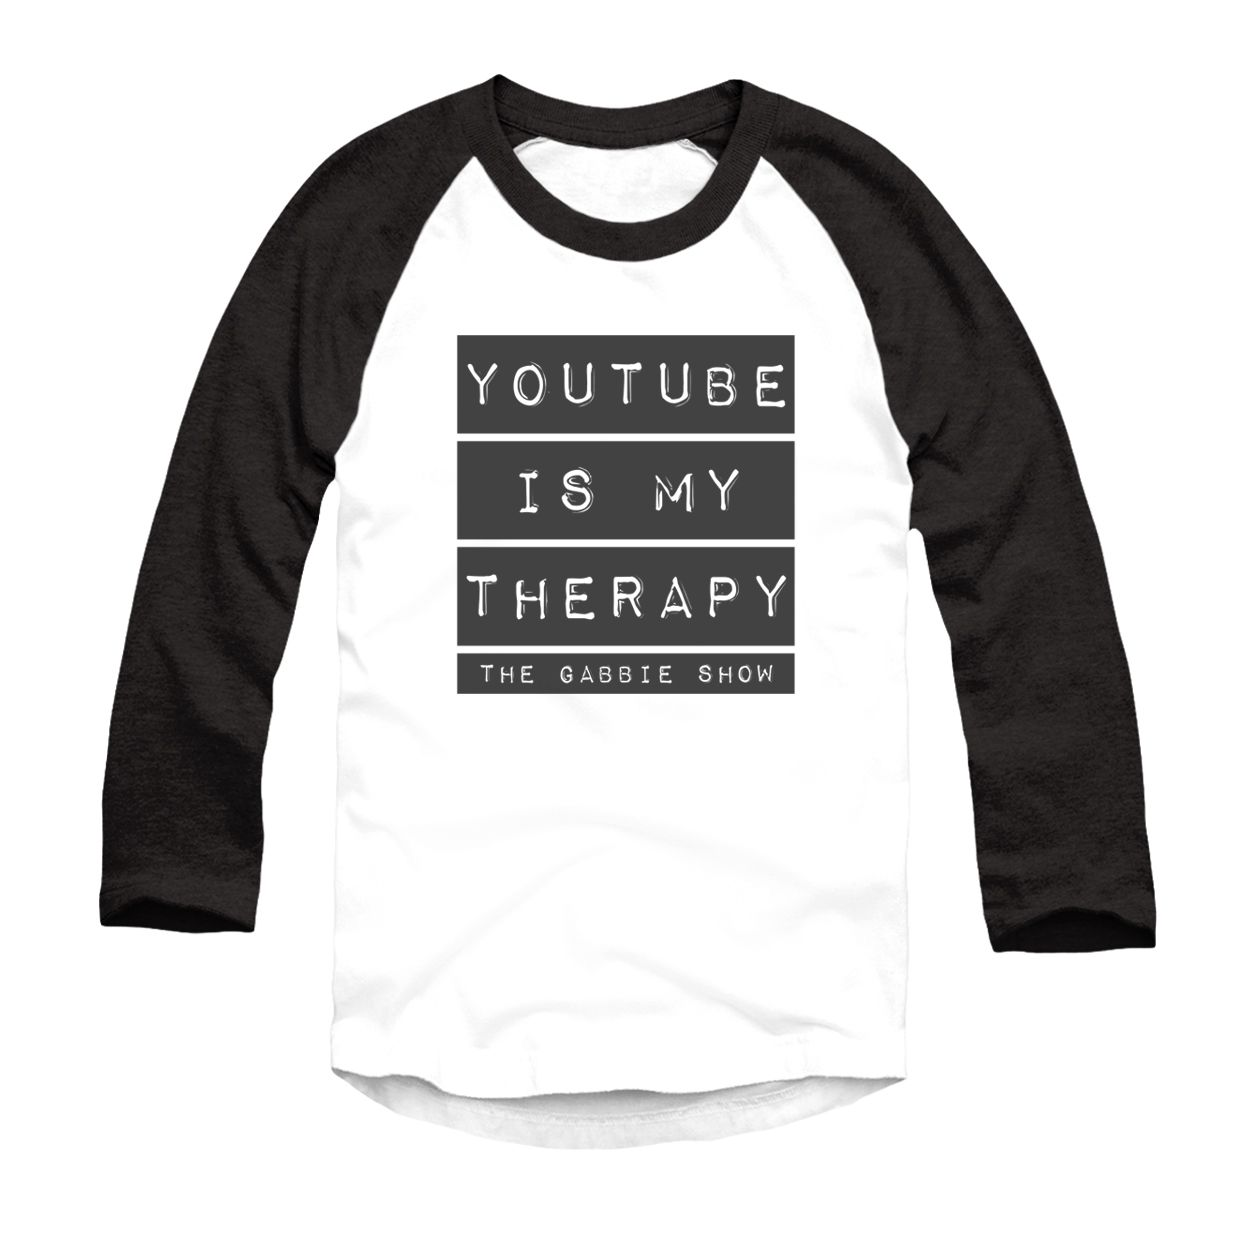 The Gabbie Show Youtube Is My Therapy Votes Are In Heres Badly Drawn Tshirt Short Circuit Mens Buy Online At Grindstore Super Limited Edition Tee Available For 2 Weeks Only